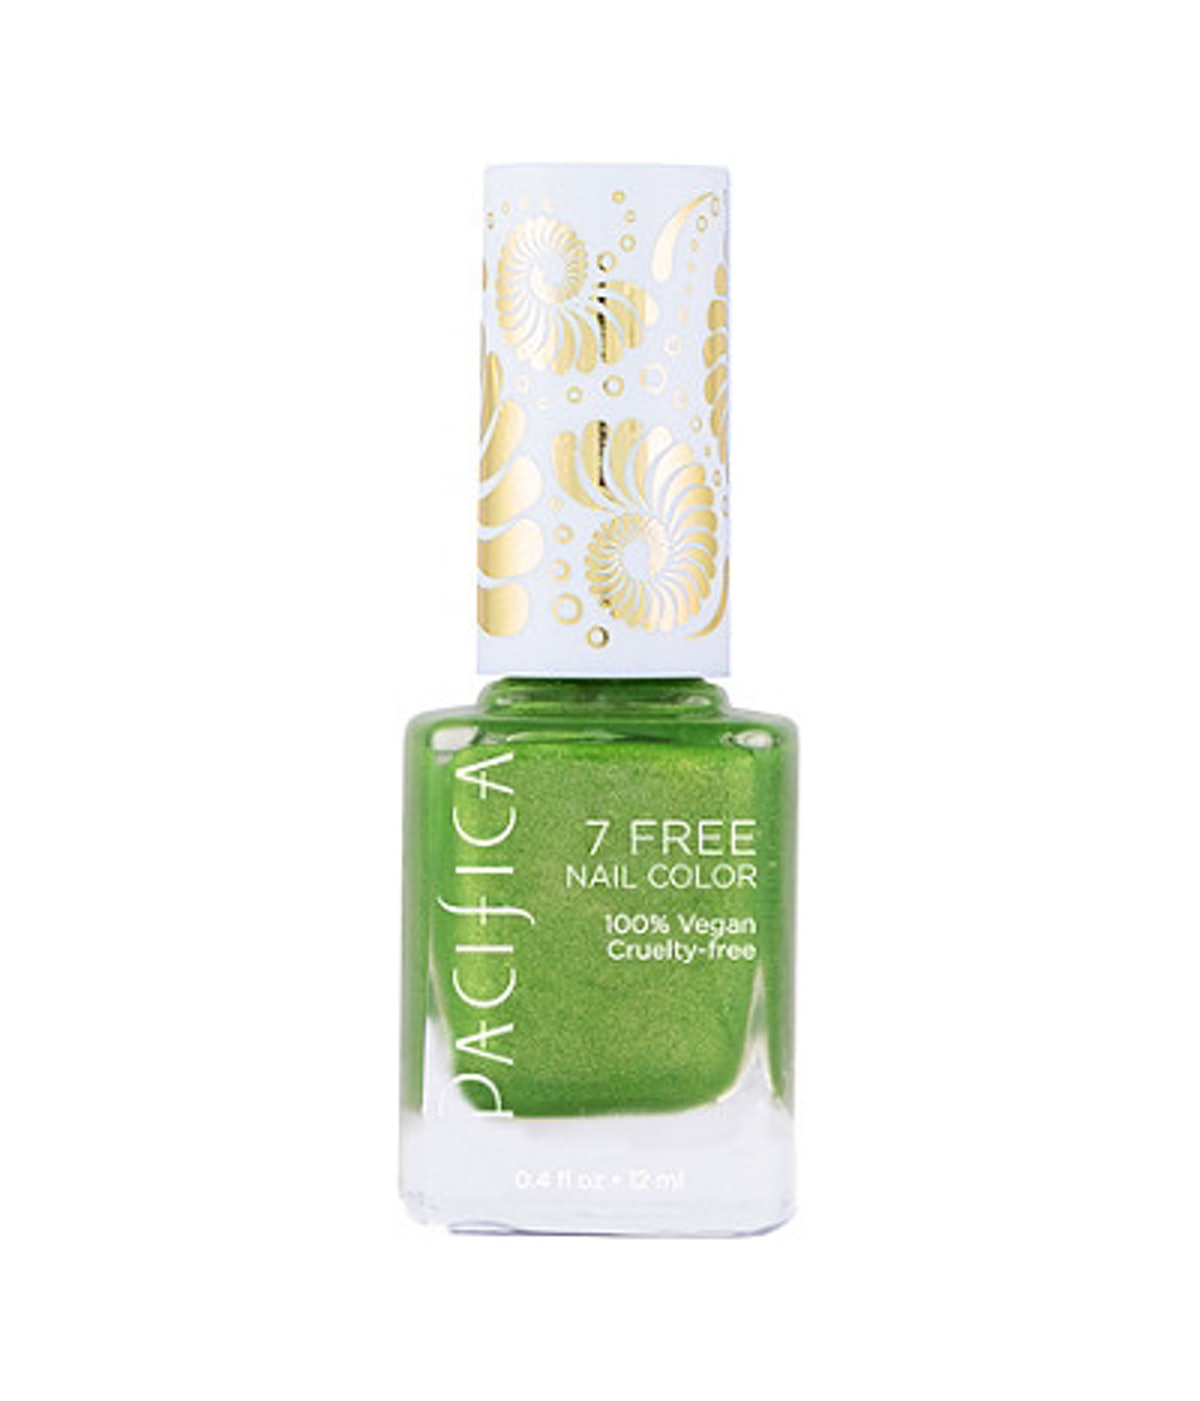 Pacifica 7 Free Nail Polish Collection in Sea Monster